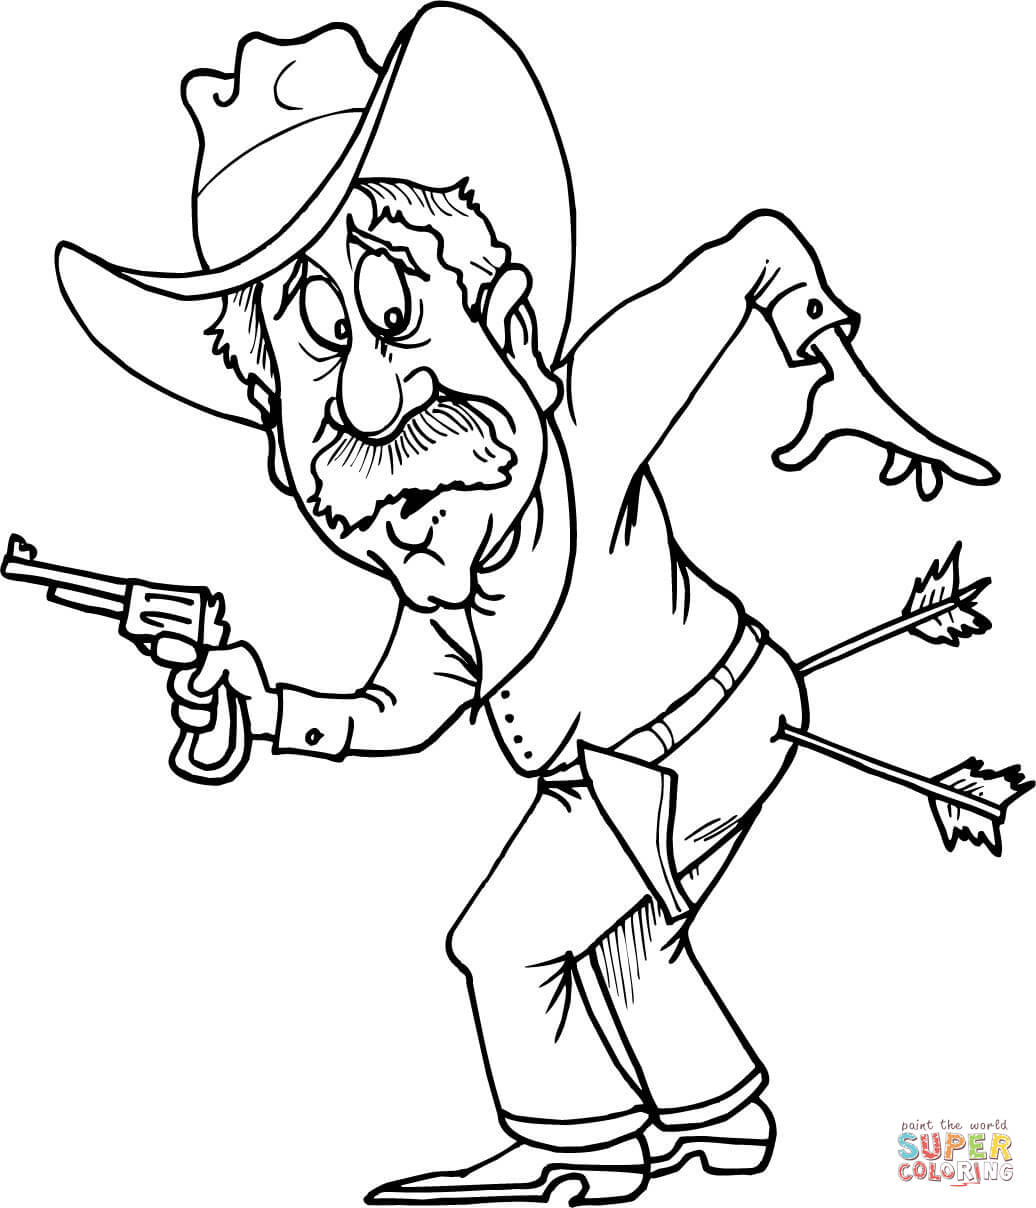 Cowboy drawing at getdrawings. Western clipart arrow svg library stock